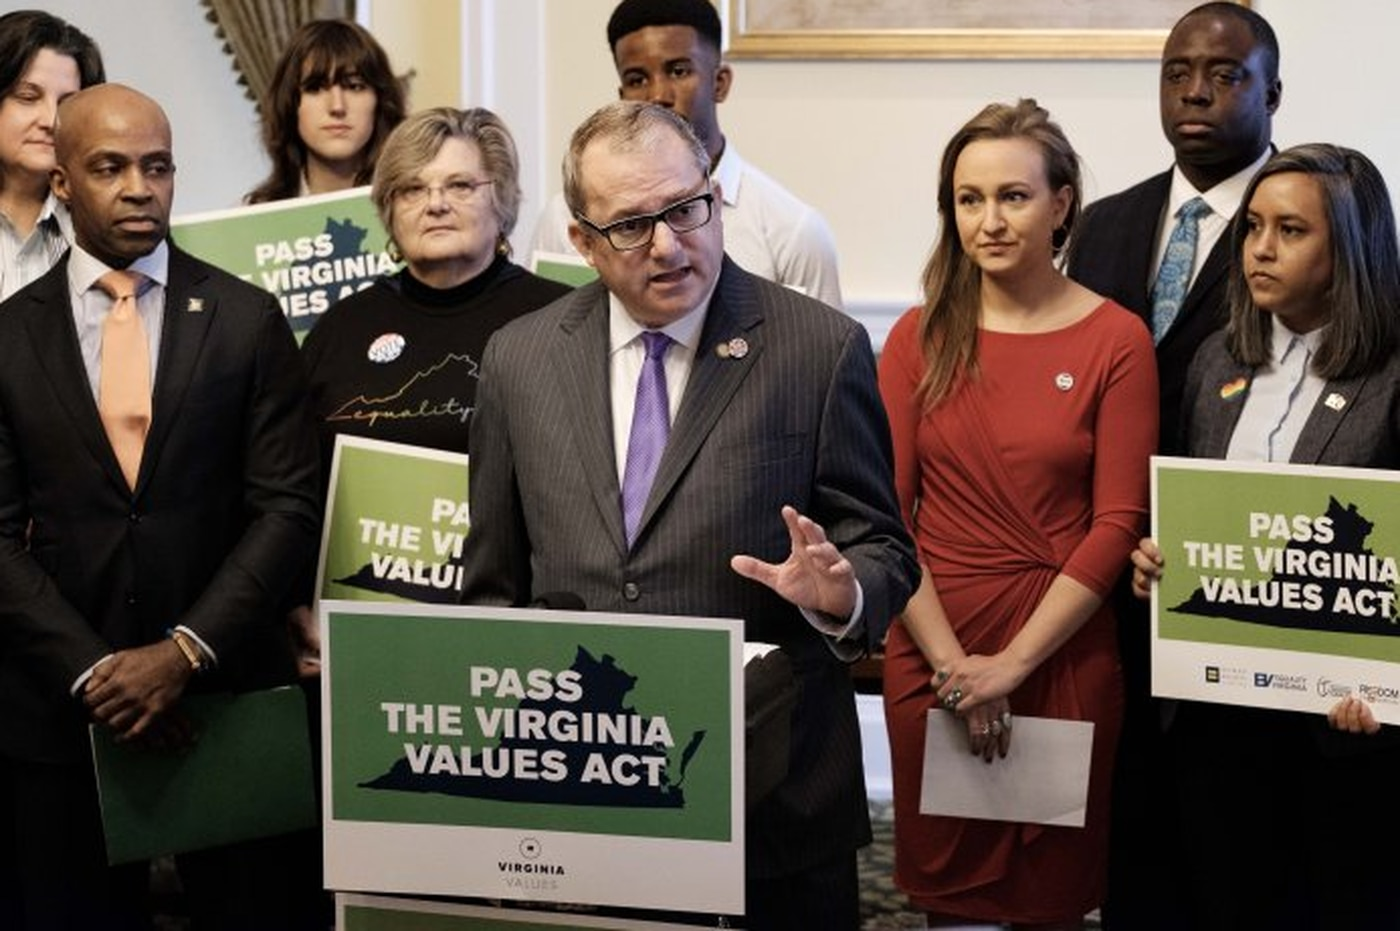 Here We Go: Virginia Passes Law Extending Anti-Discrimination Protections to Include LGBT Community